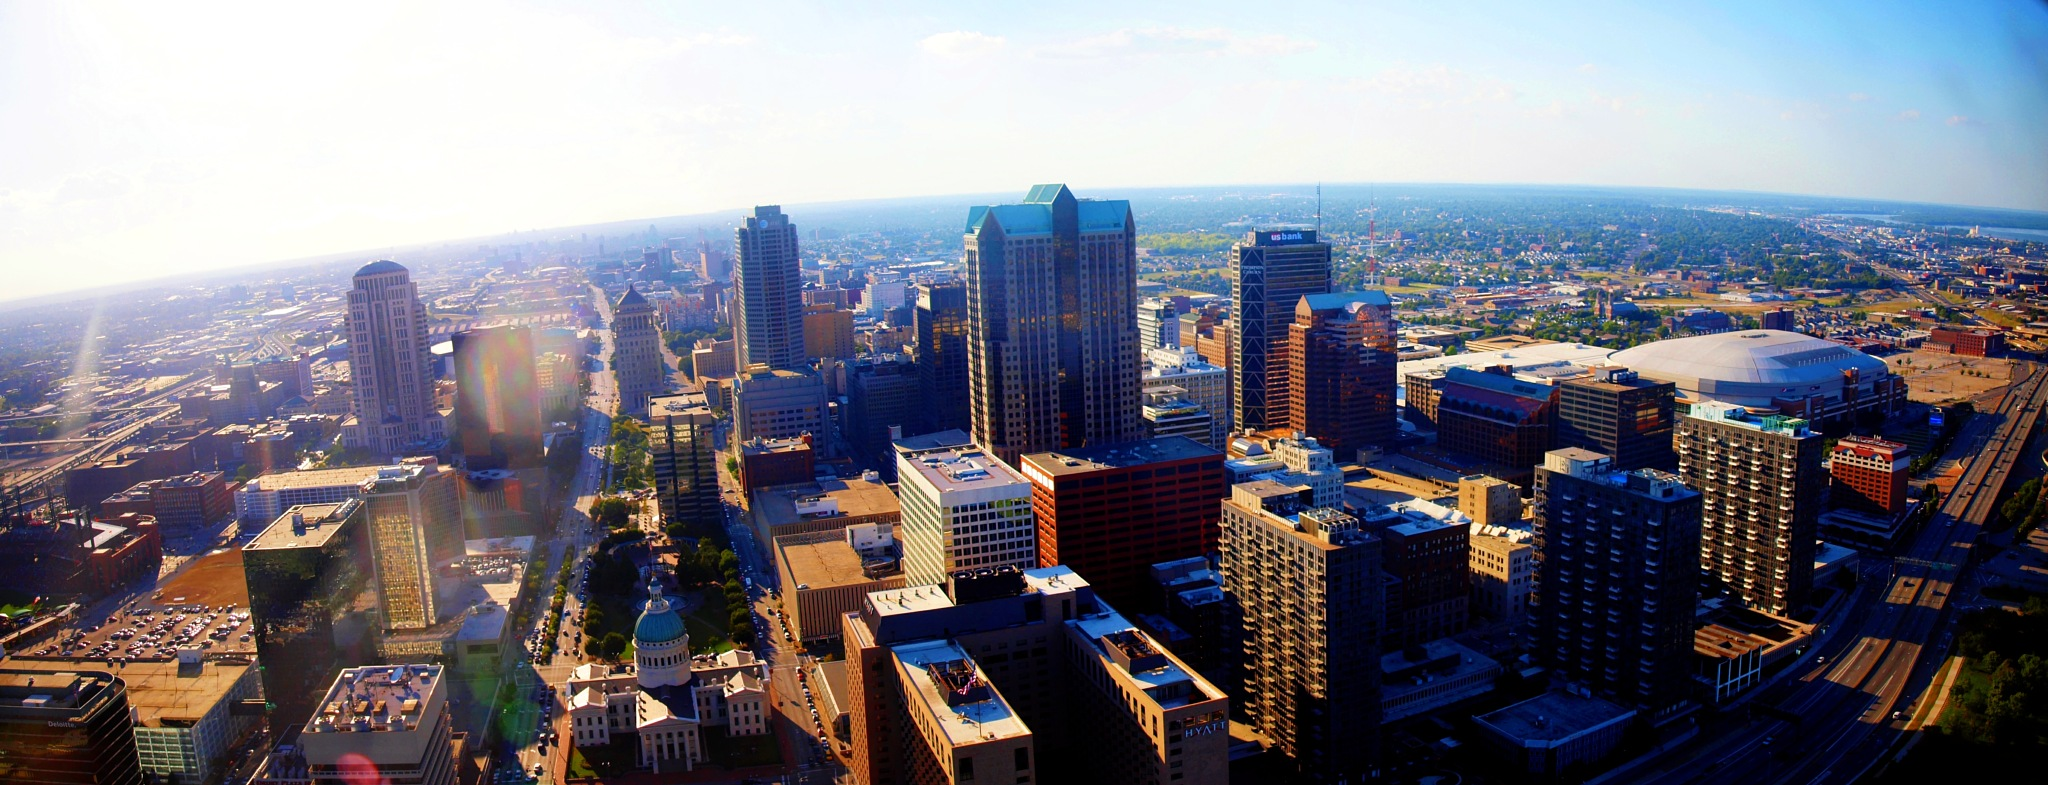 St. Louis From The top of the Arch by Sadiq Ali AlQatari